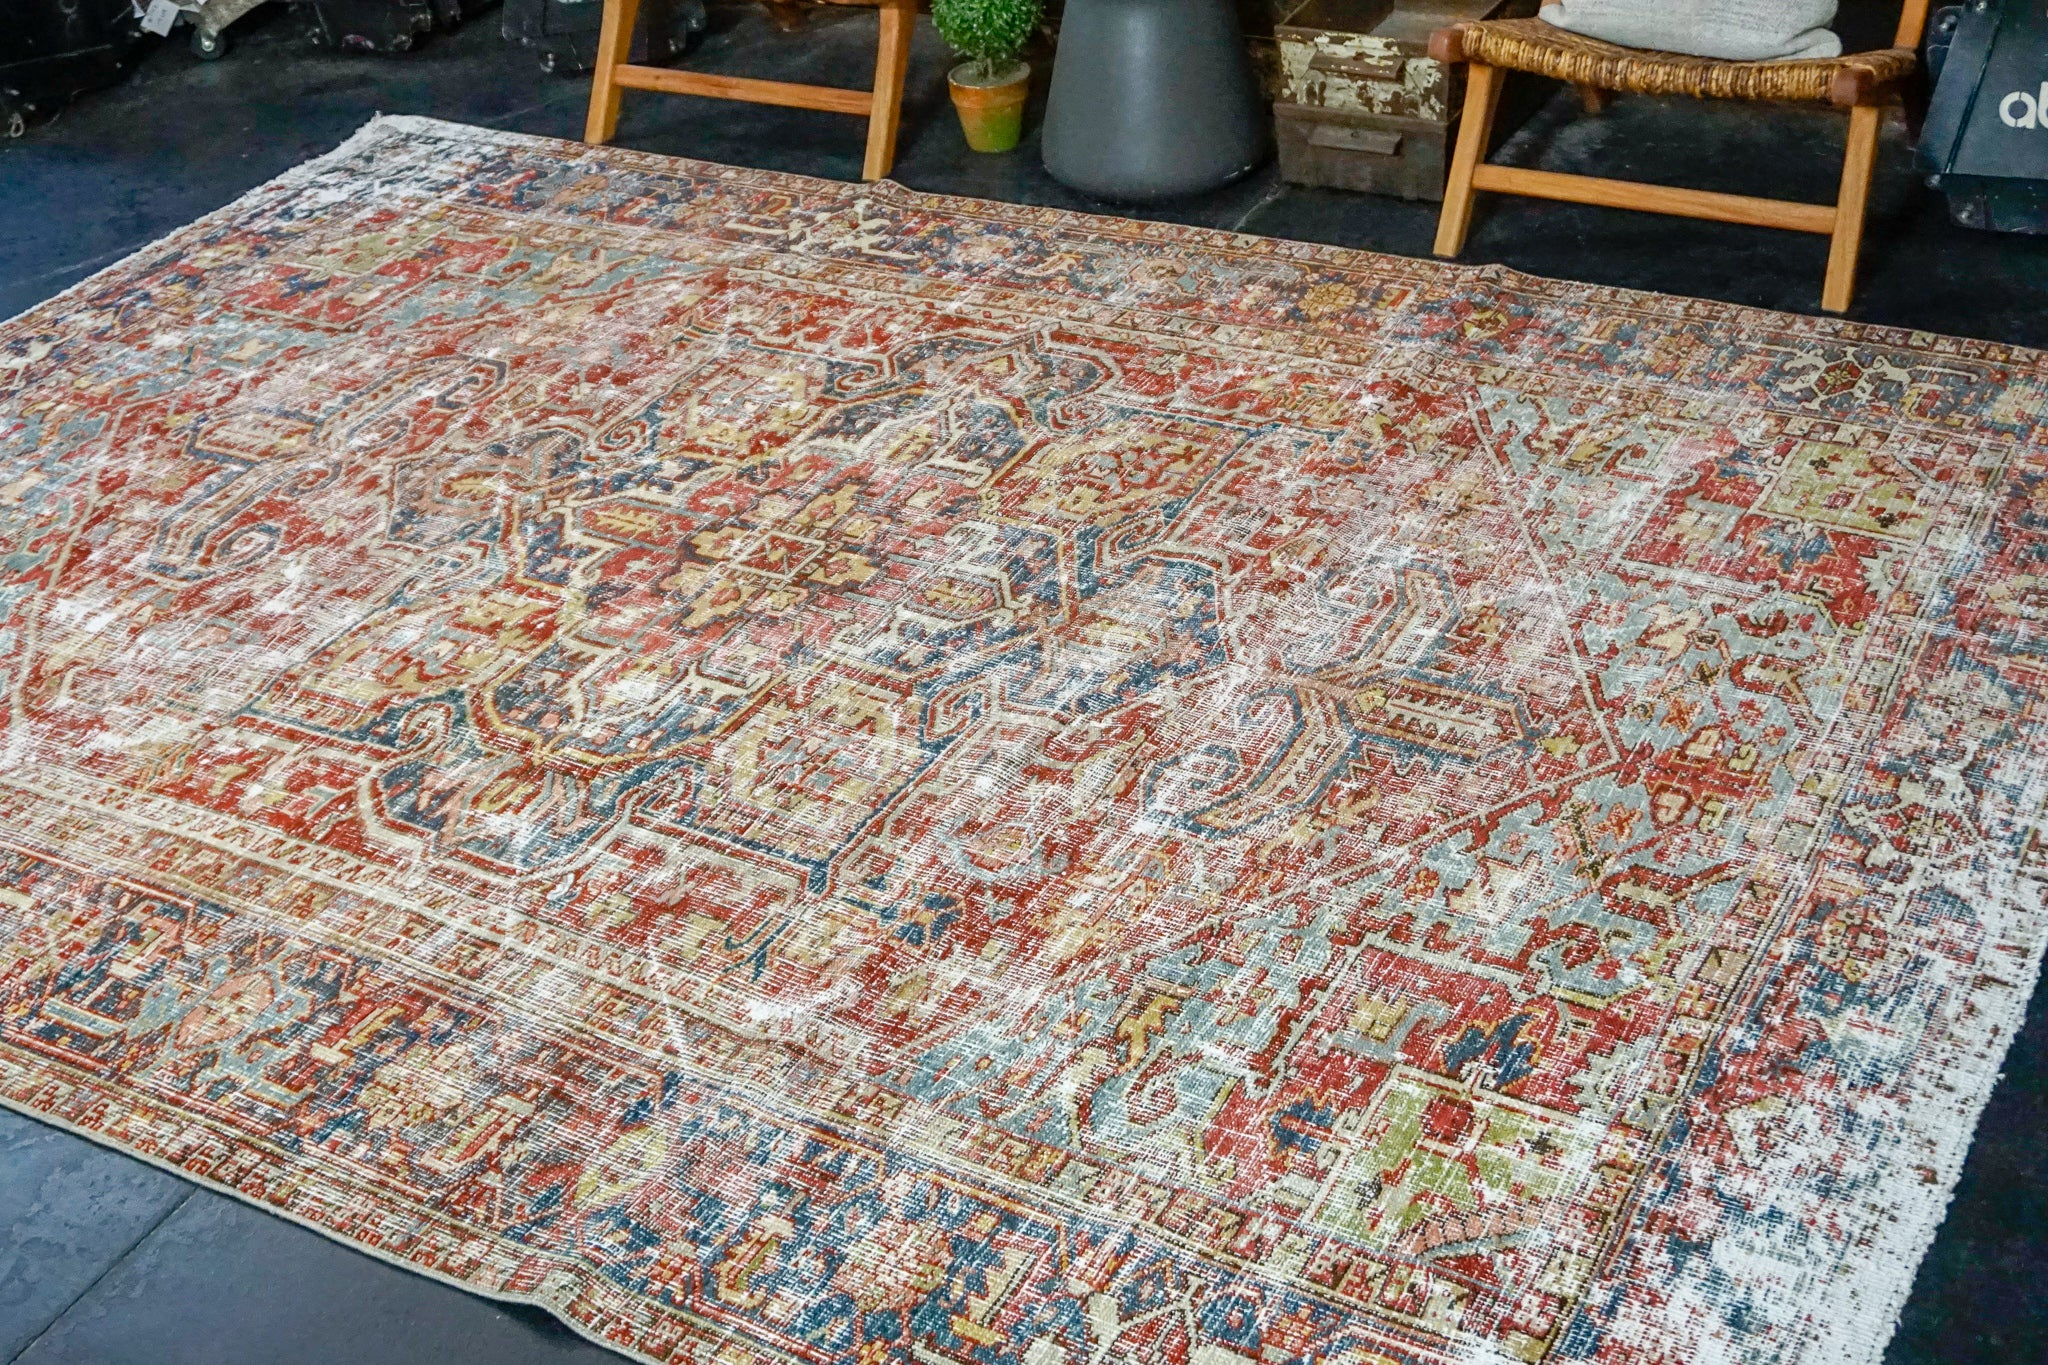 8'2 x 11' Classic Vintage Hamadan Rug Muted Red, Blue and Cream 60's Carpet